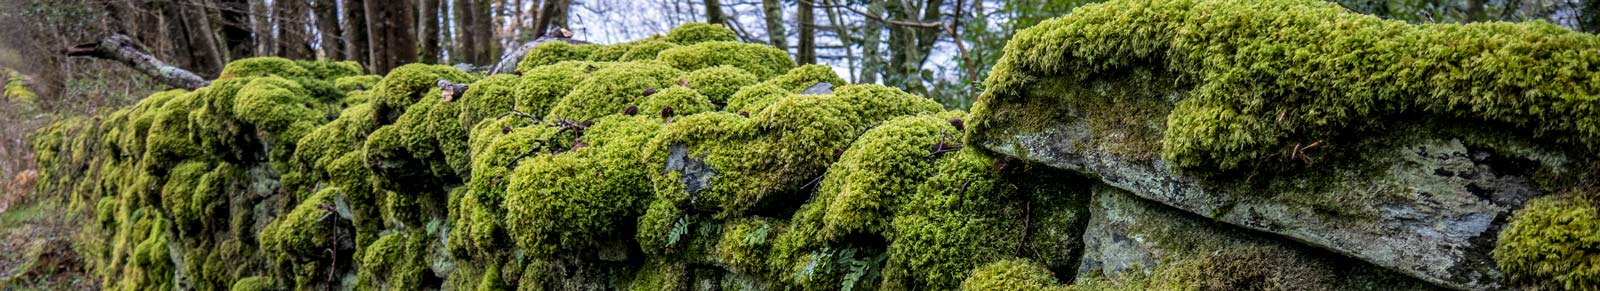 Mossy wall in Appin